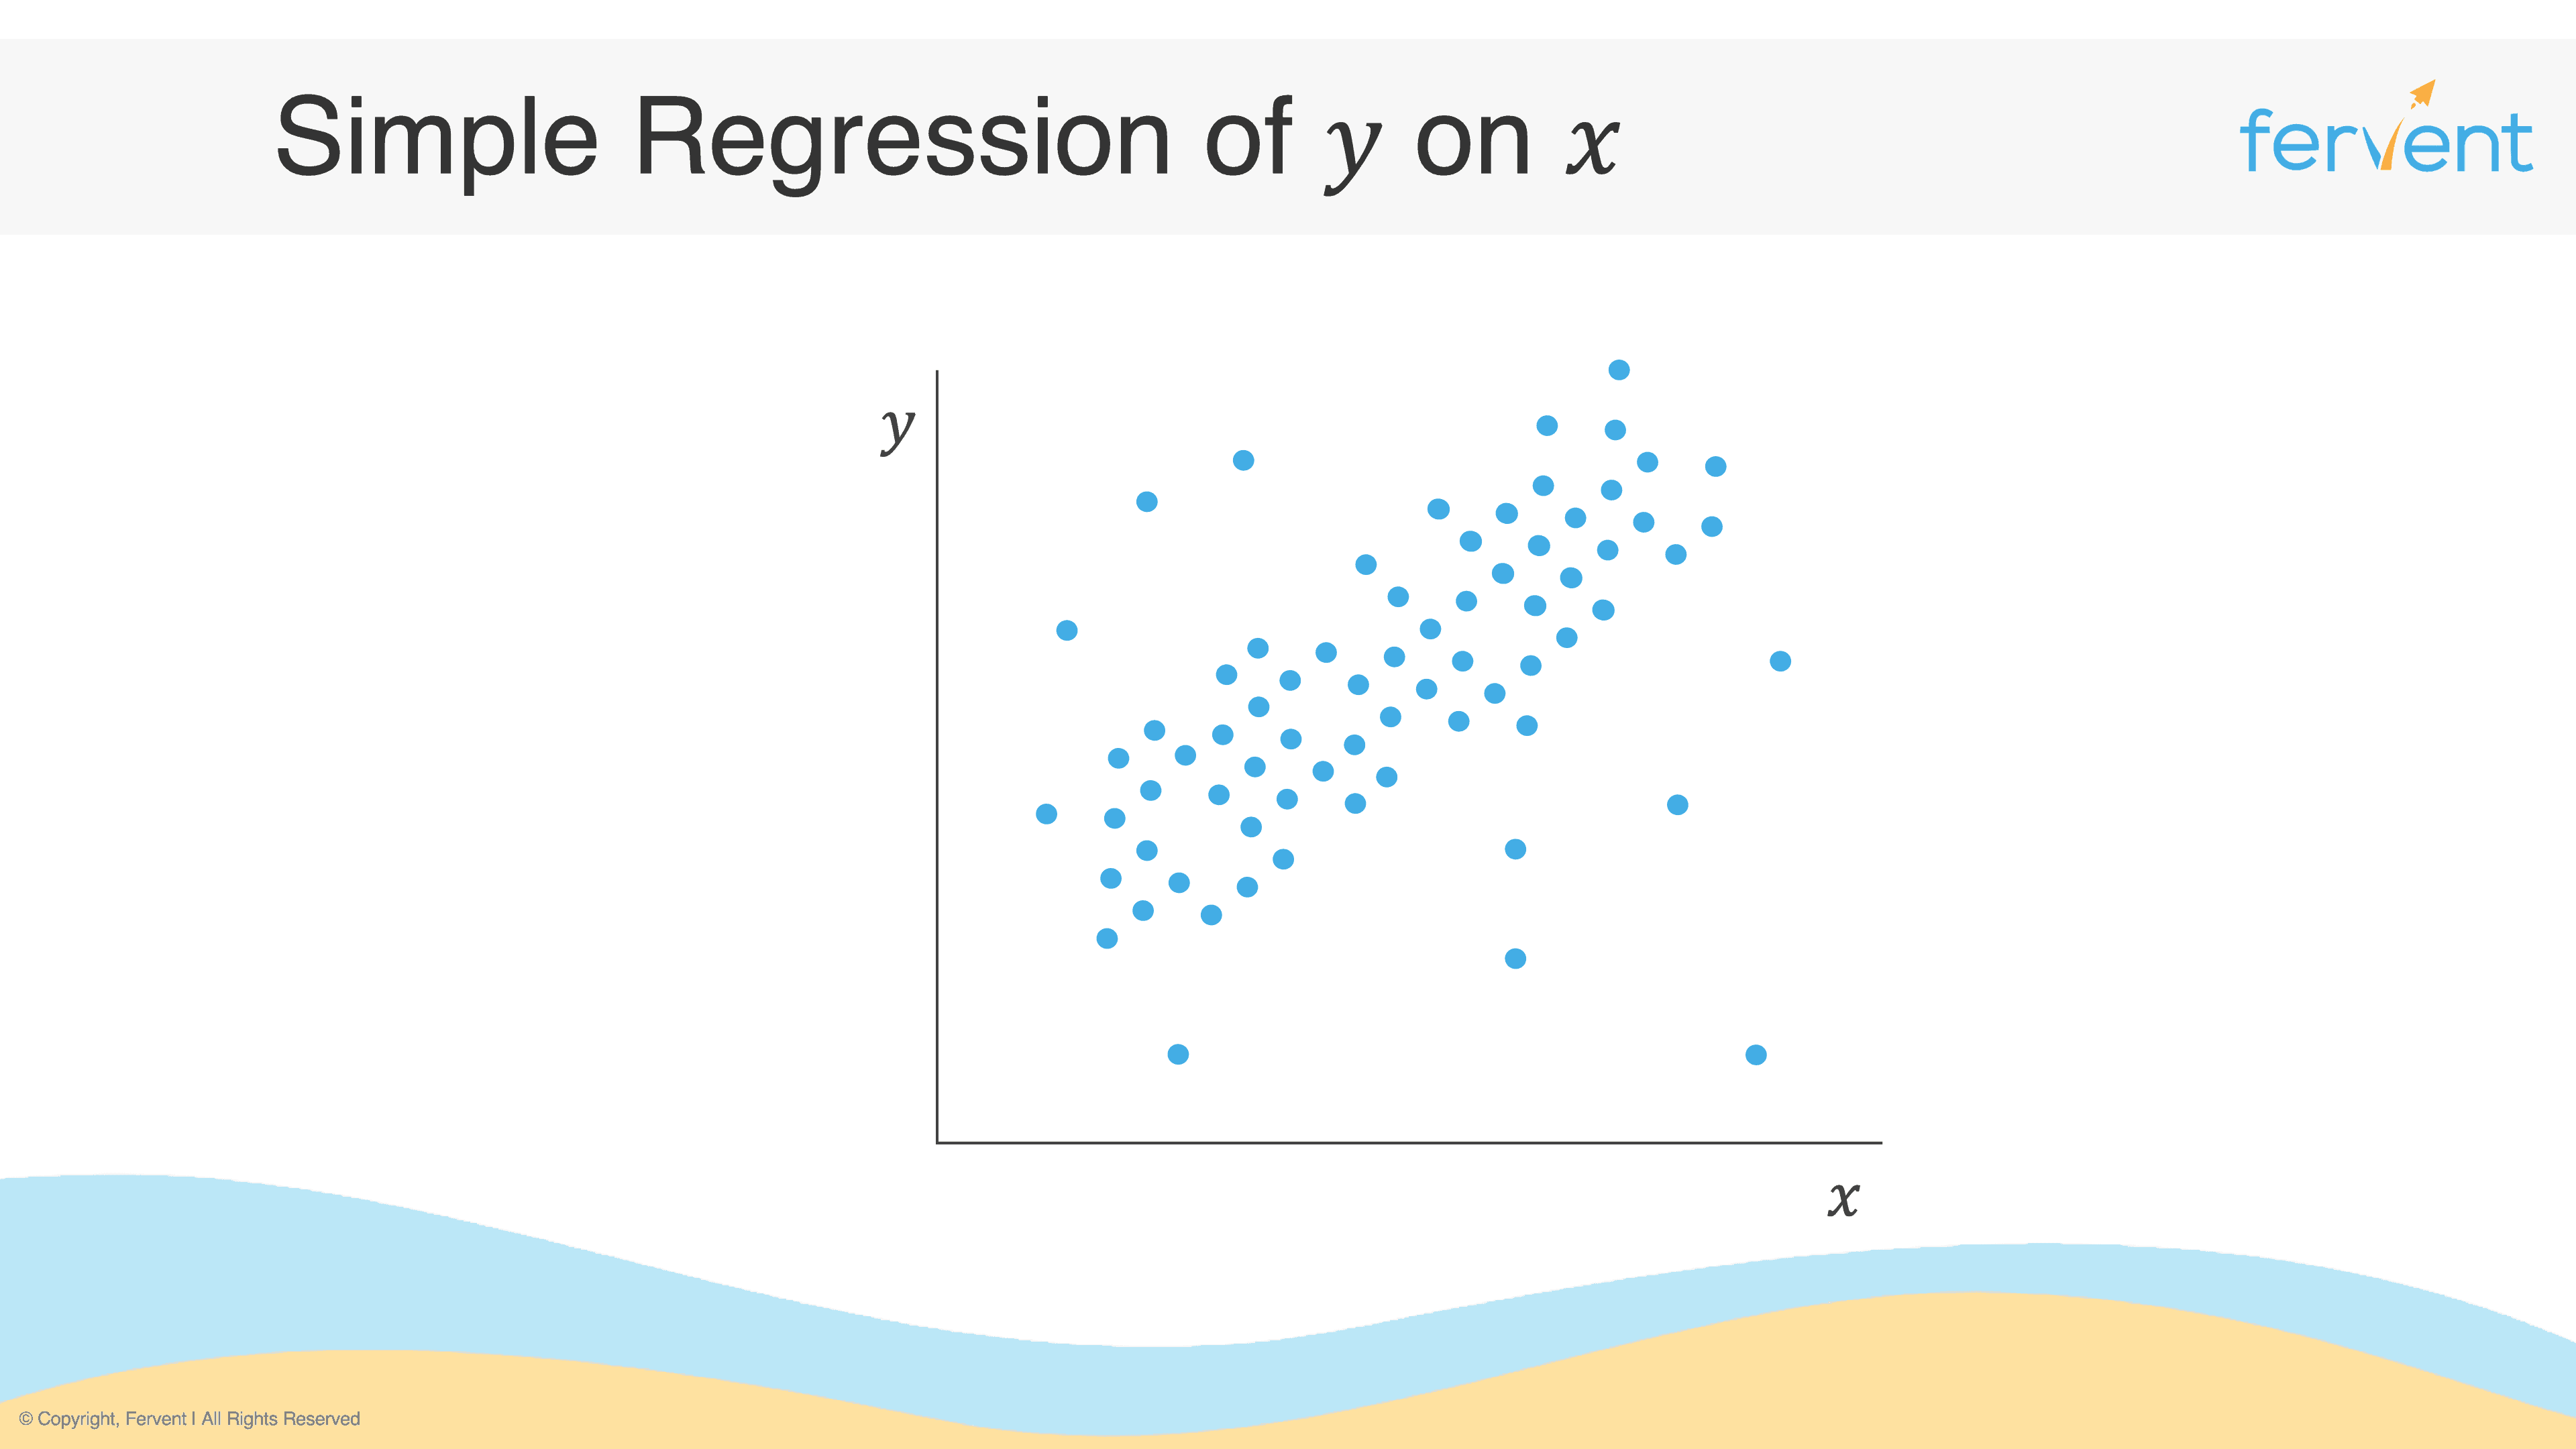 Slide showing data points in a simple regression, building up to generalised asset pricing models